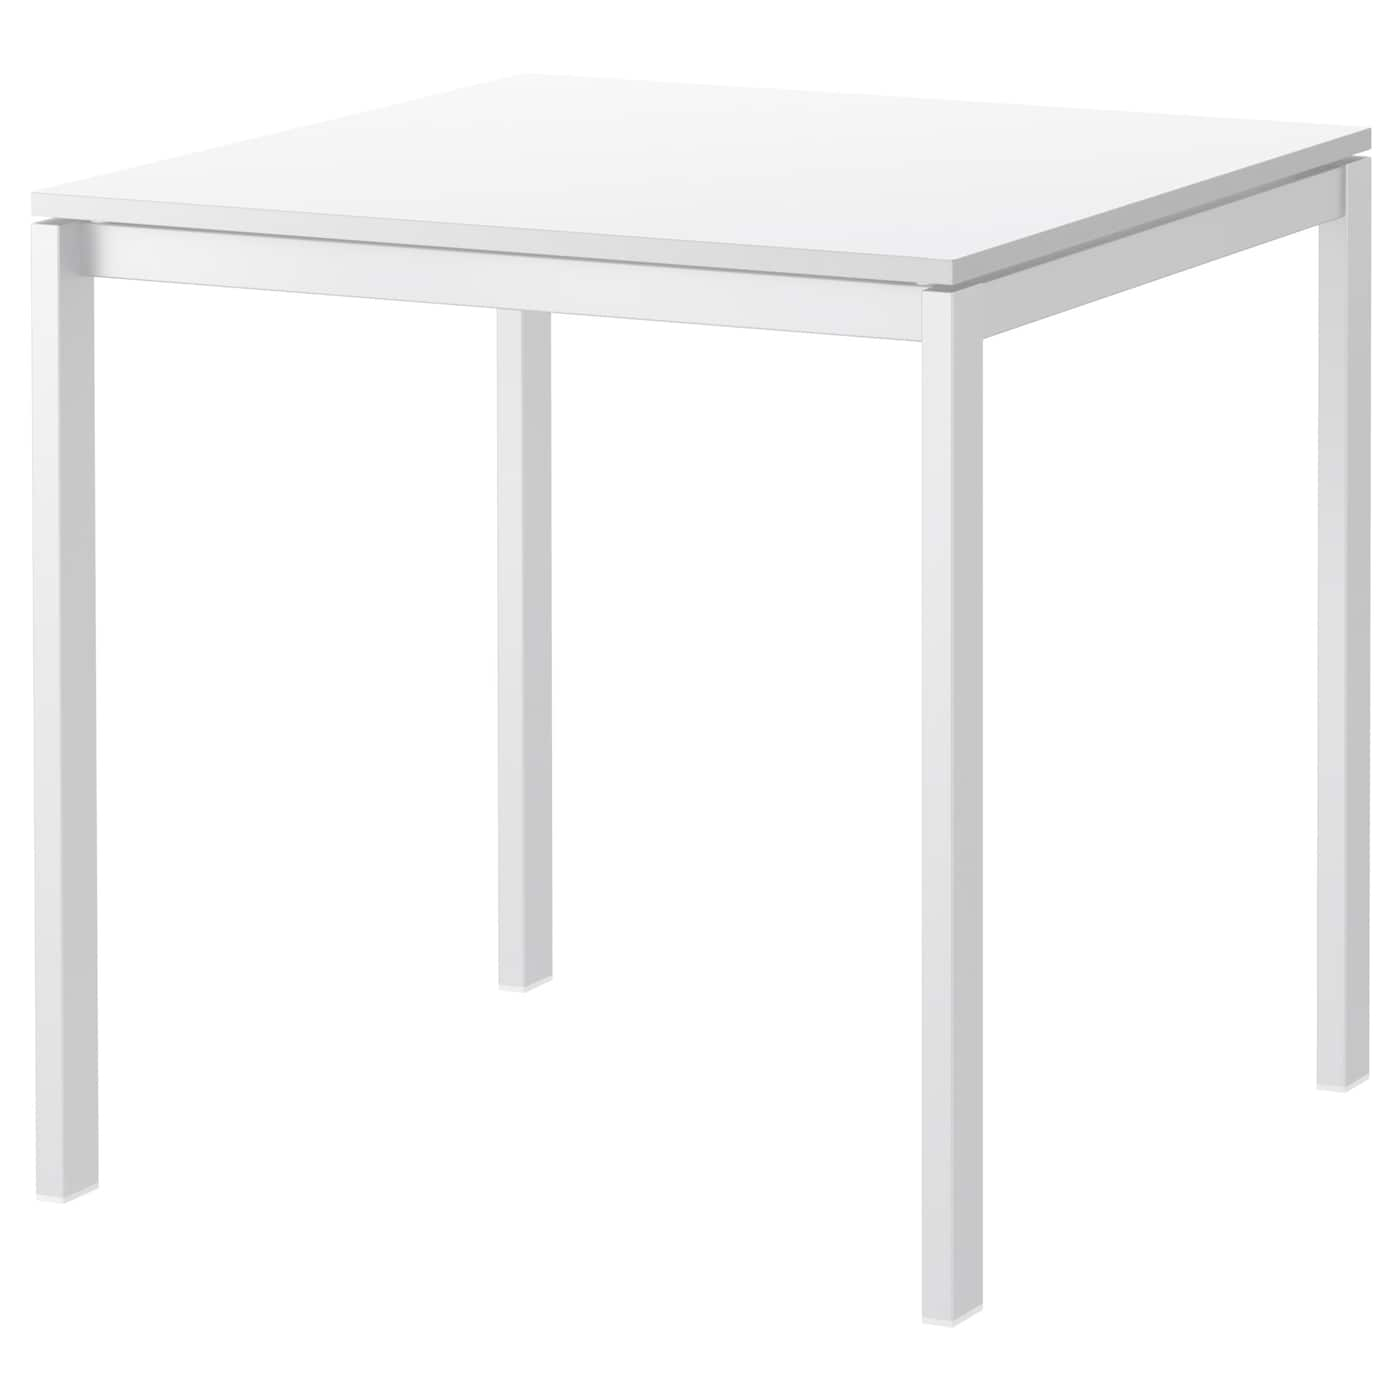 melltorp table white 75 x 75 cm ikea. Black Bedroom Furniture Sets. Home Design Ideas